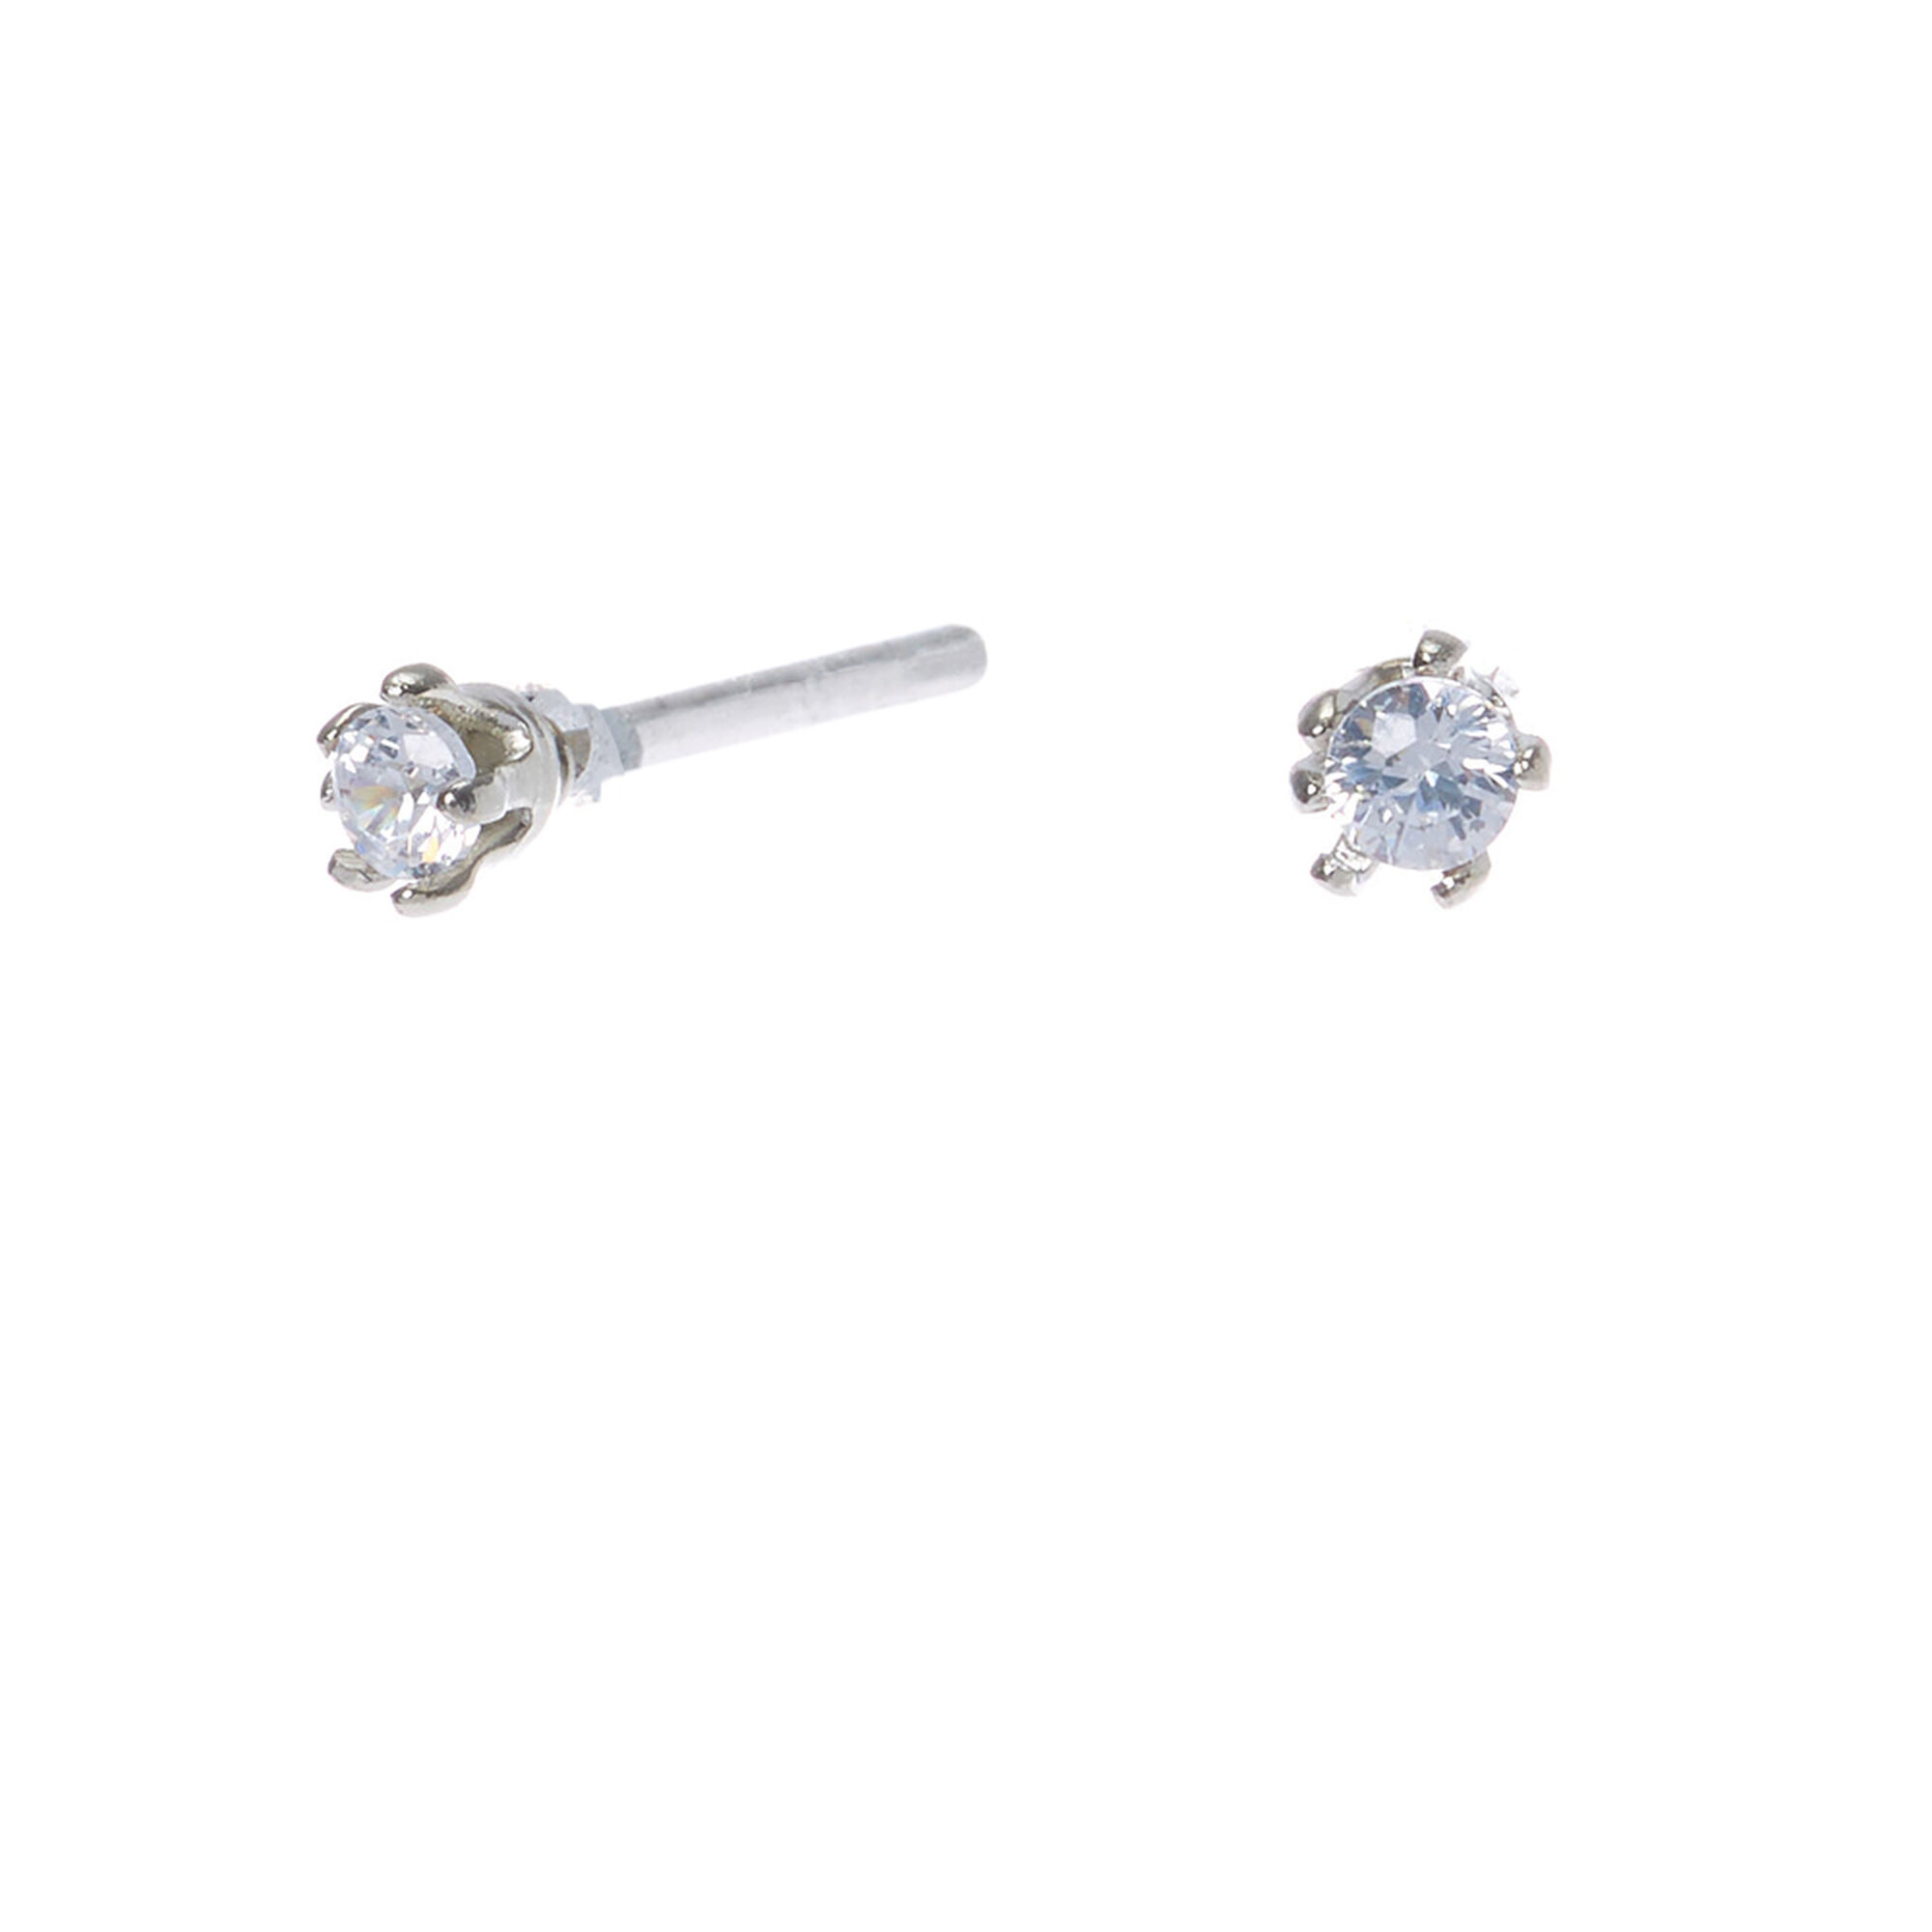 Silver Cubic Zirconia Round Stud Earrings - 2MM